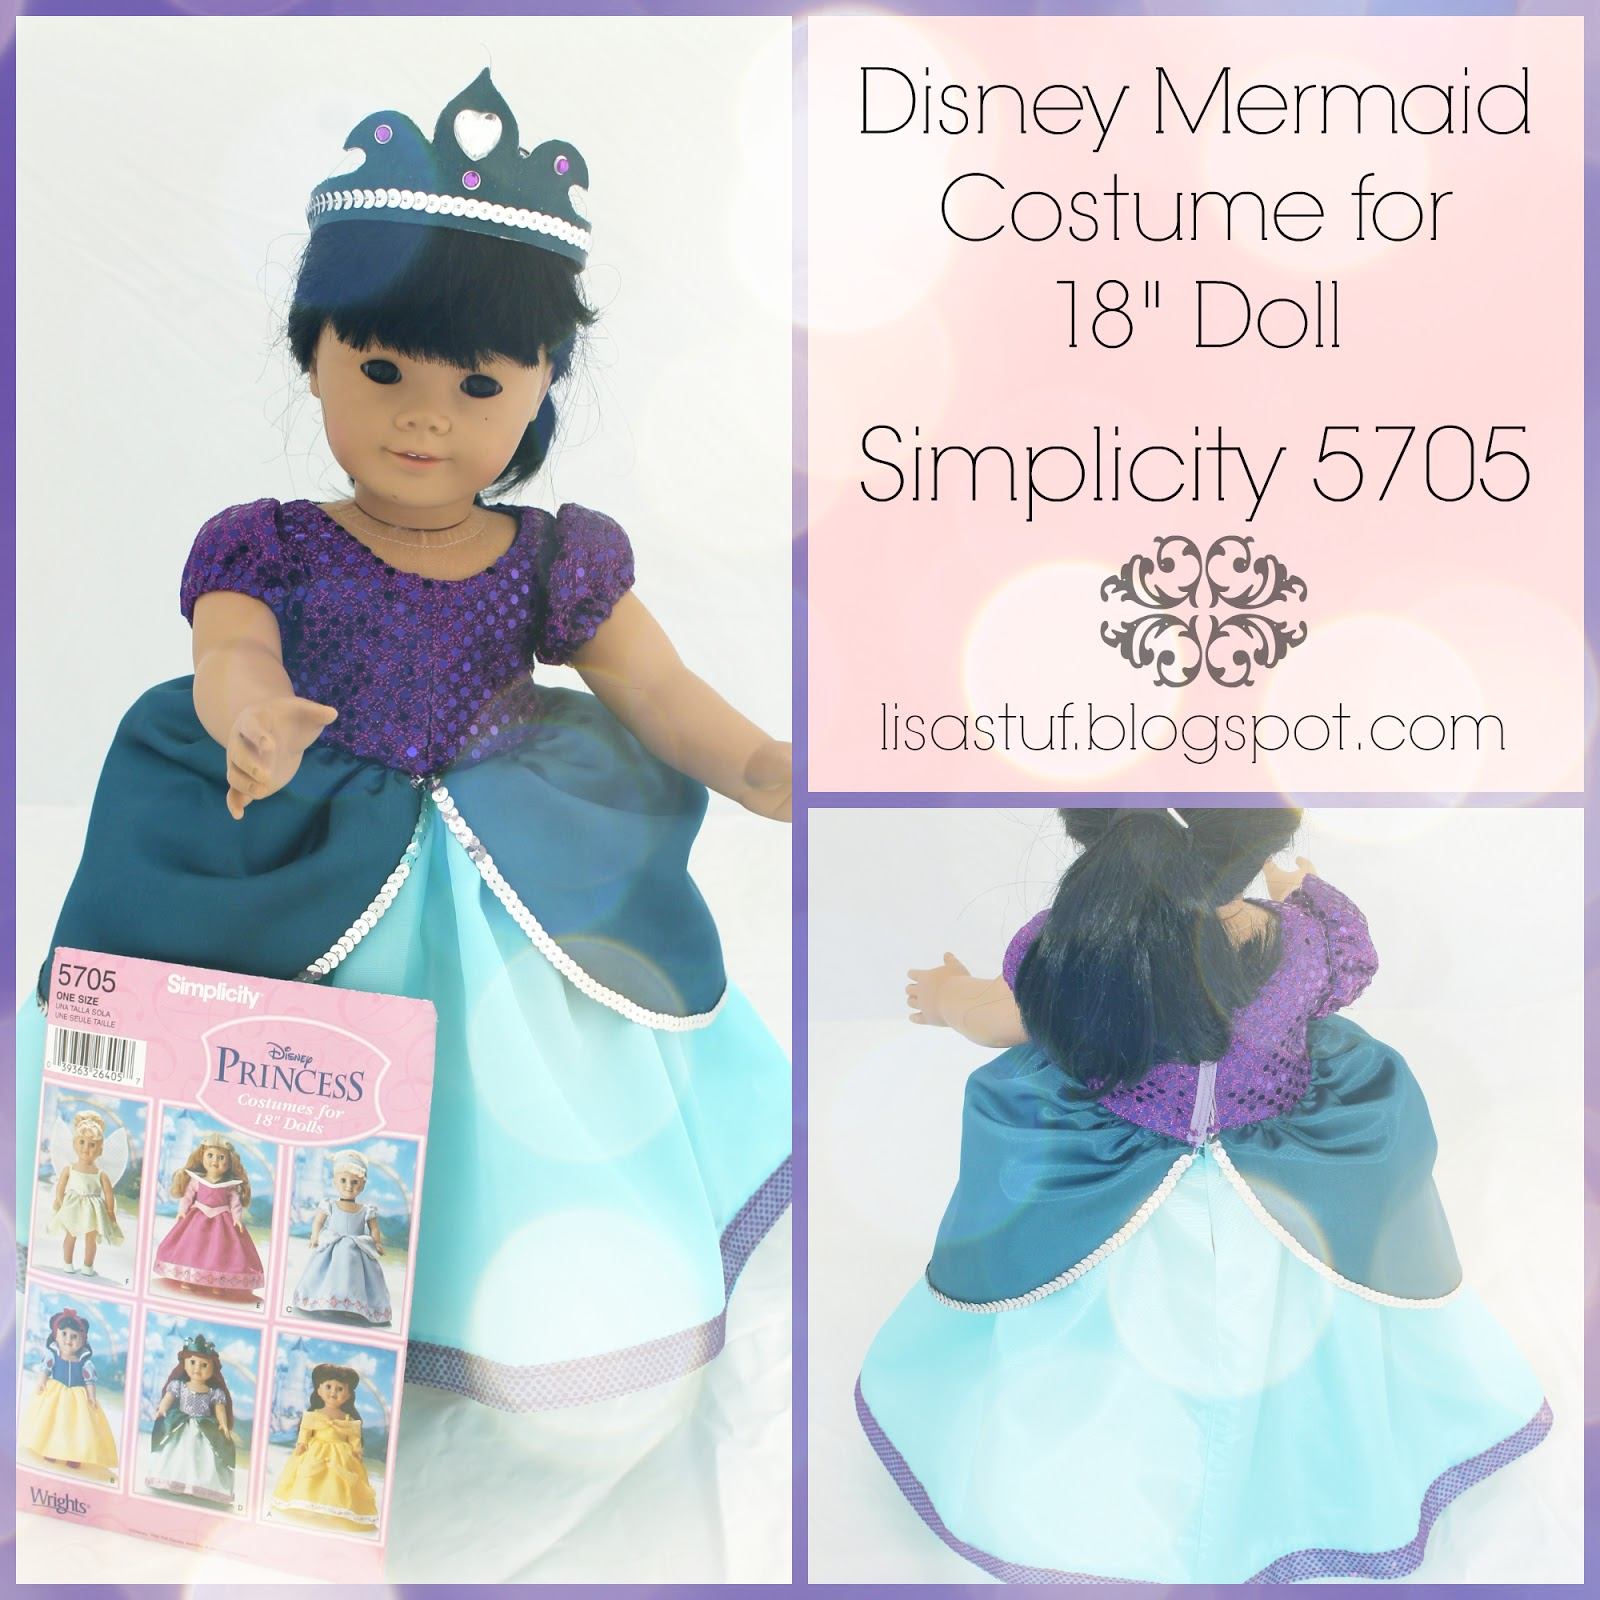 Stuff-n-Such By Lisa Disney Little Mermaid Princess Outfit for 18  Dolls - Simplicity 5705  sc 1 st  Stuff-n-Such By Lisa & Stuff-n-Such By Lisa: Disney Little Mermaid Princess Outfit for 18 ...